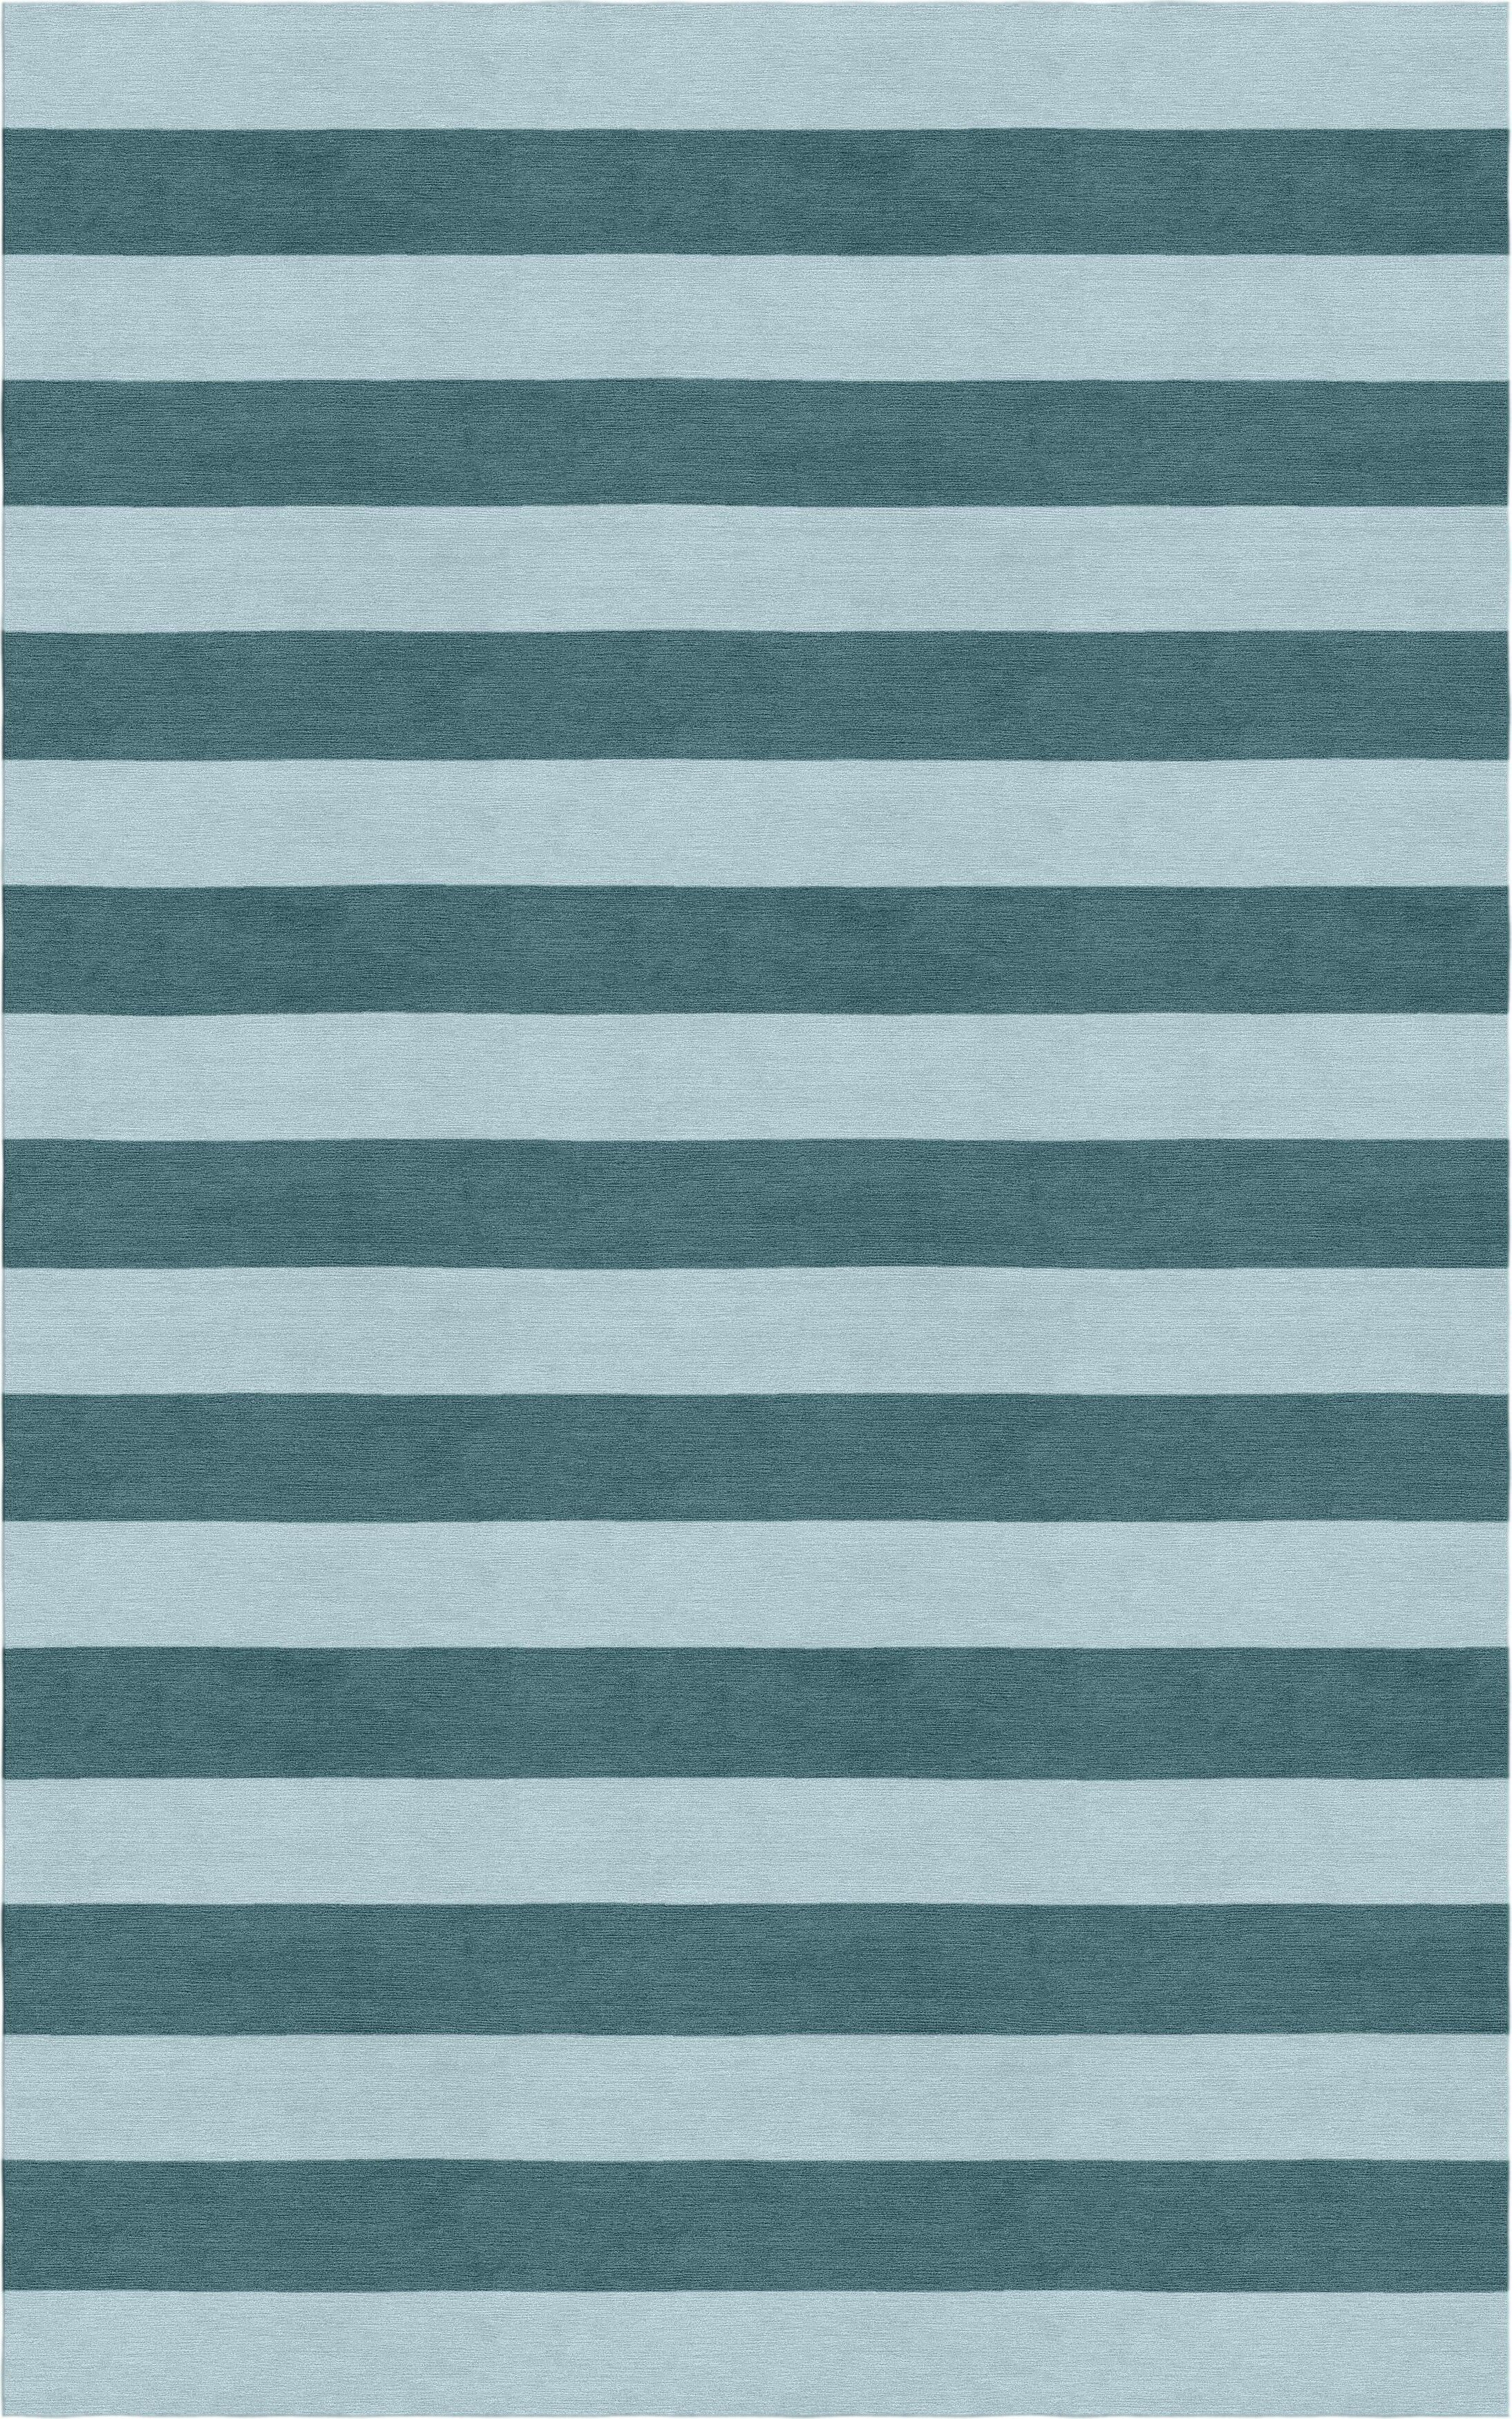 Lastra Stripe Hand-Tufted Wool Light Blue/Gray Area Rug Rug Size: Rectangle 5' x 8'